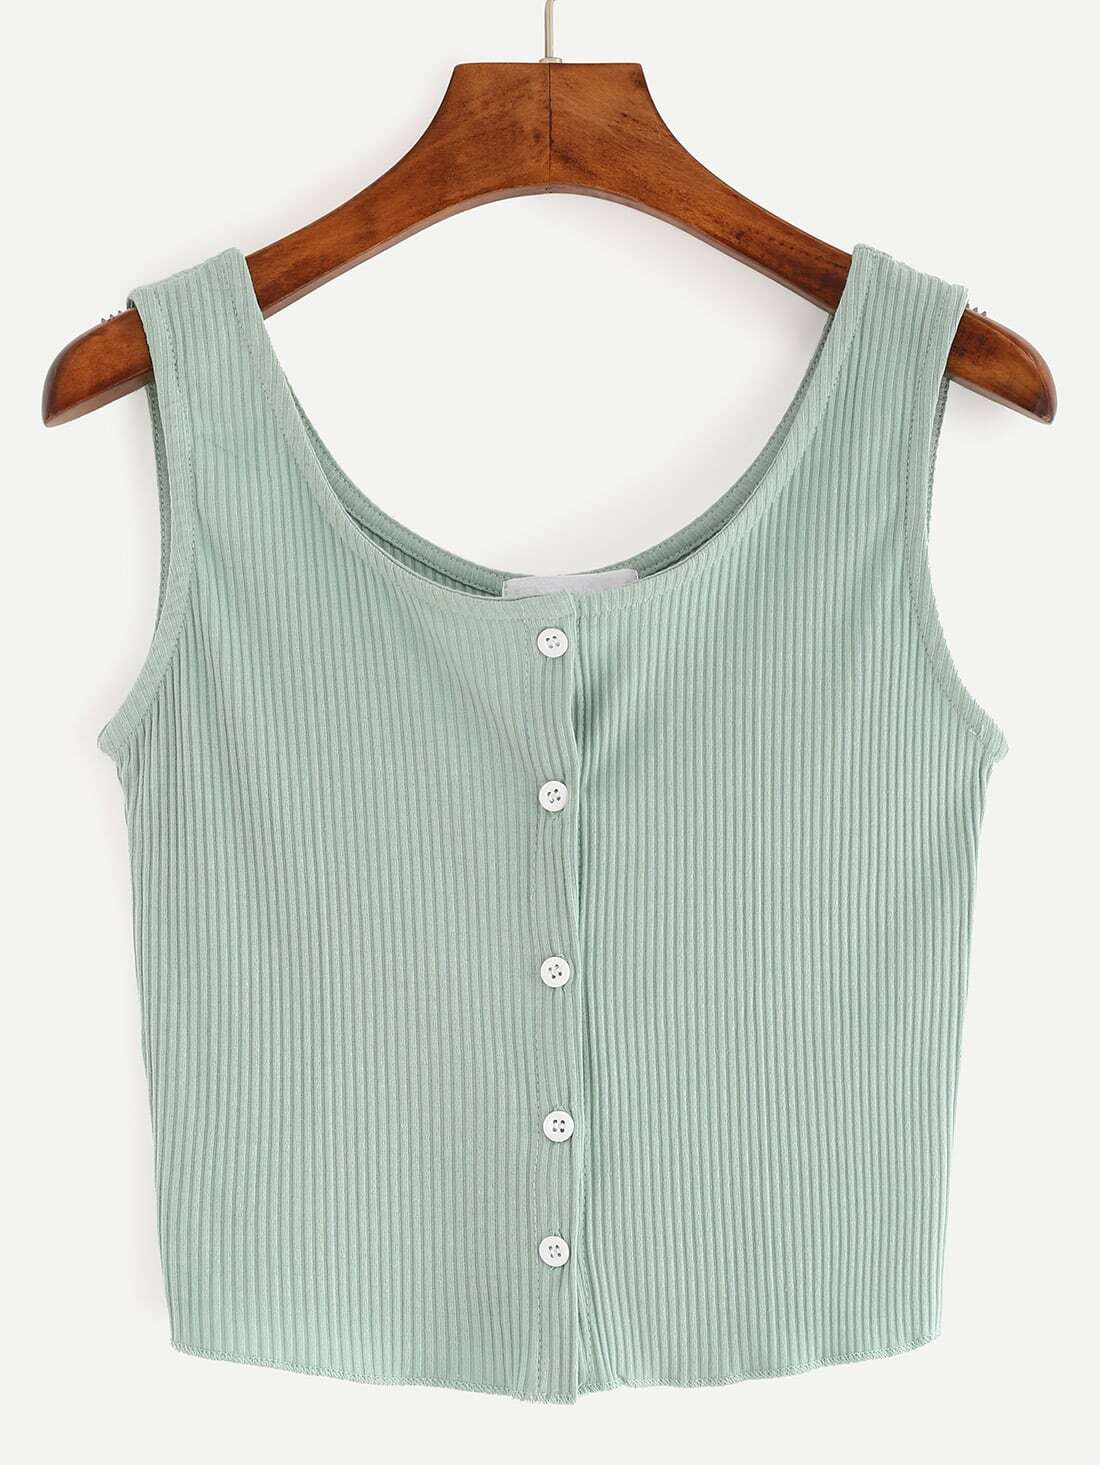 Buttoned Front Ribbed Knit Crop Tank Top - Green